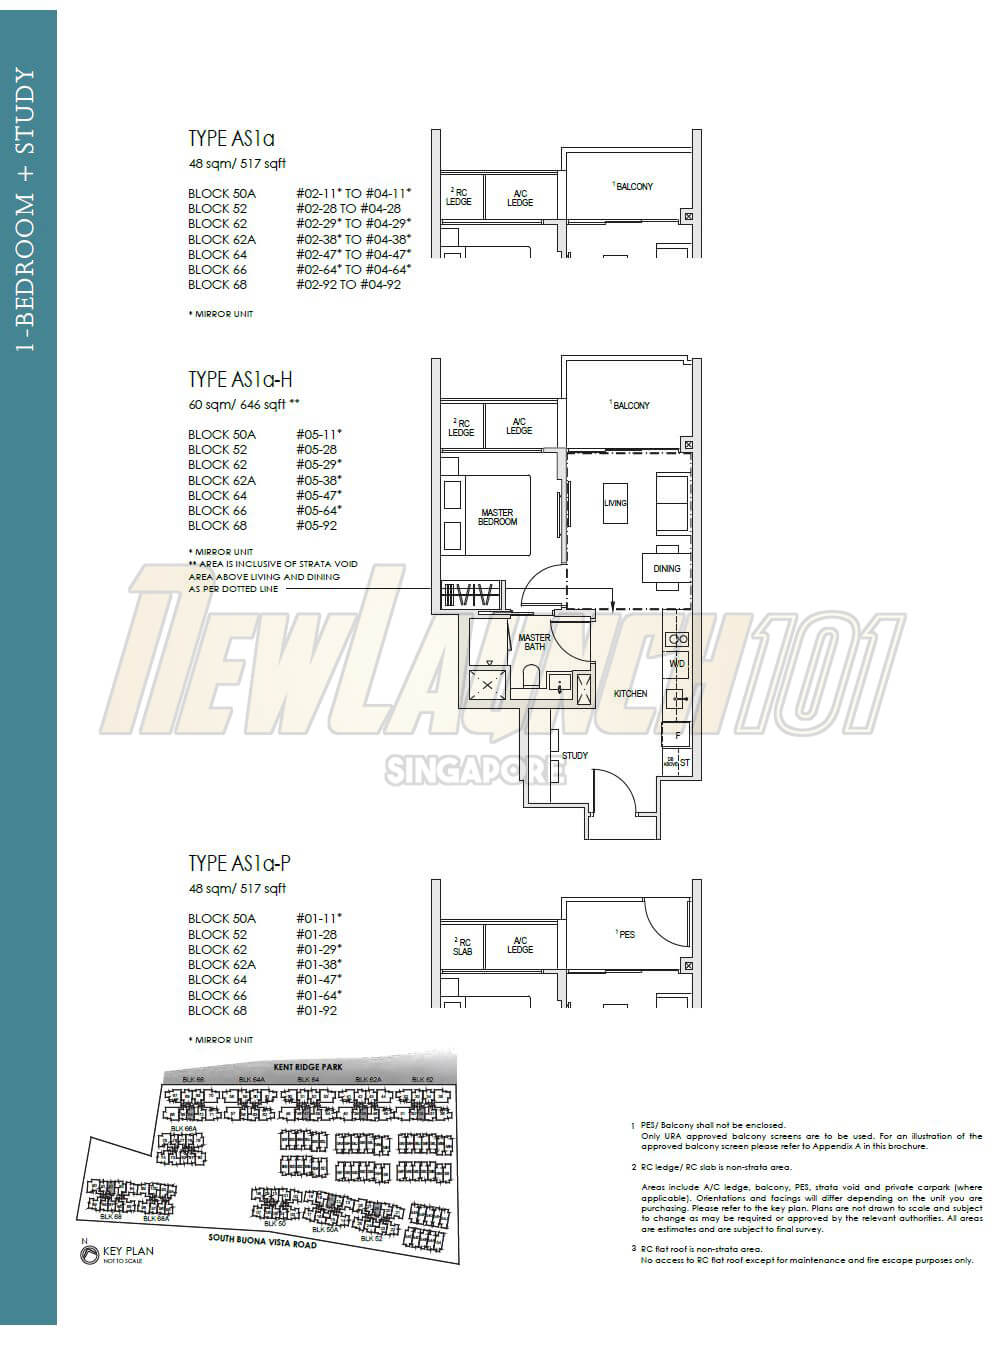 hight resolution of kent ridge hill residences floor plan 1 bedroom study type as1a